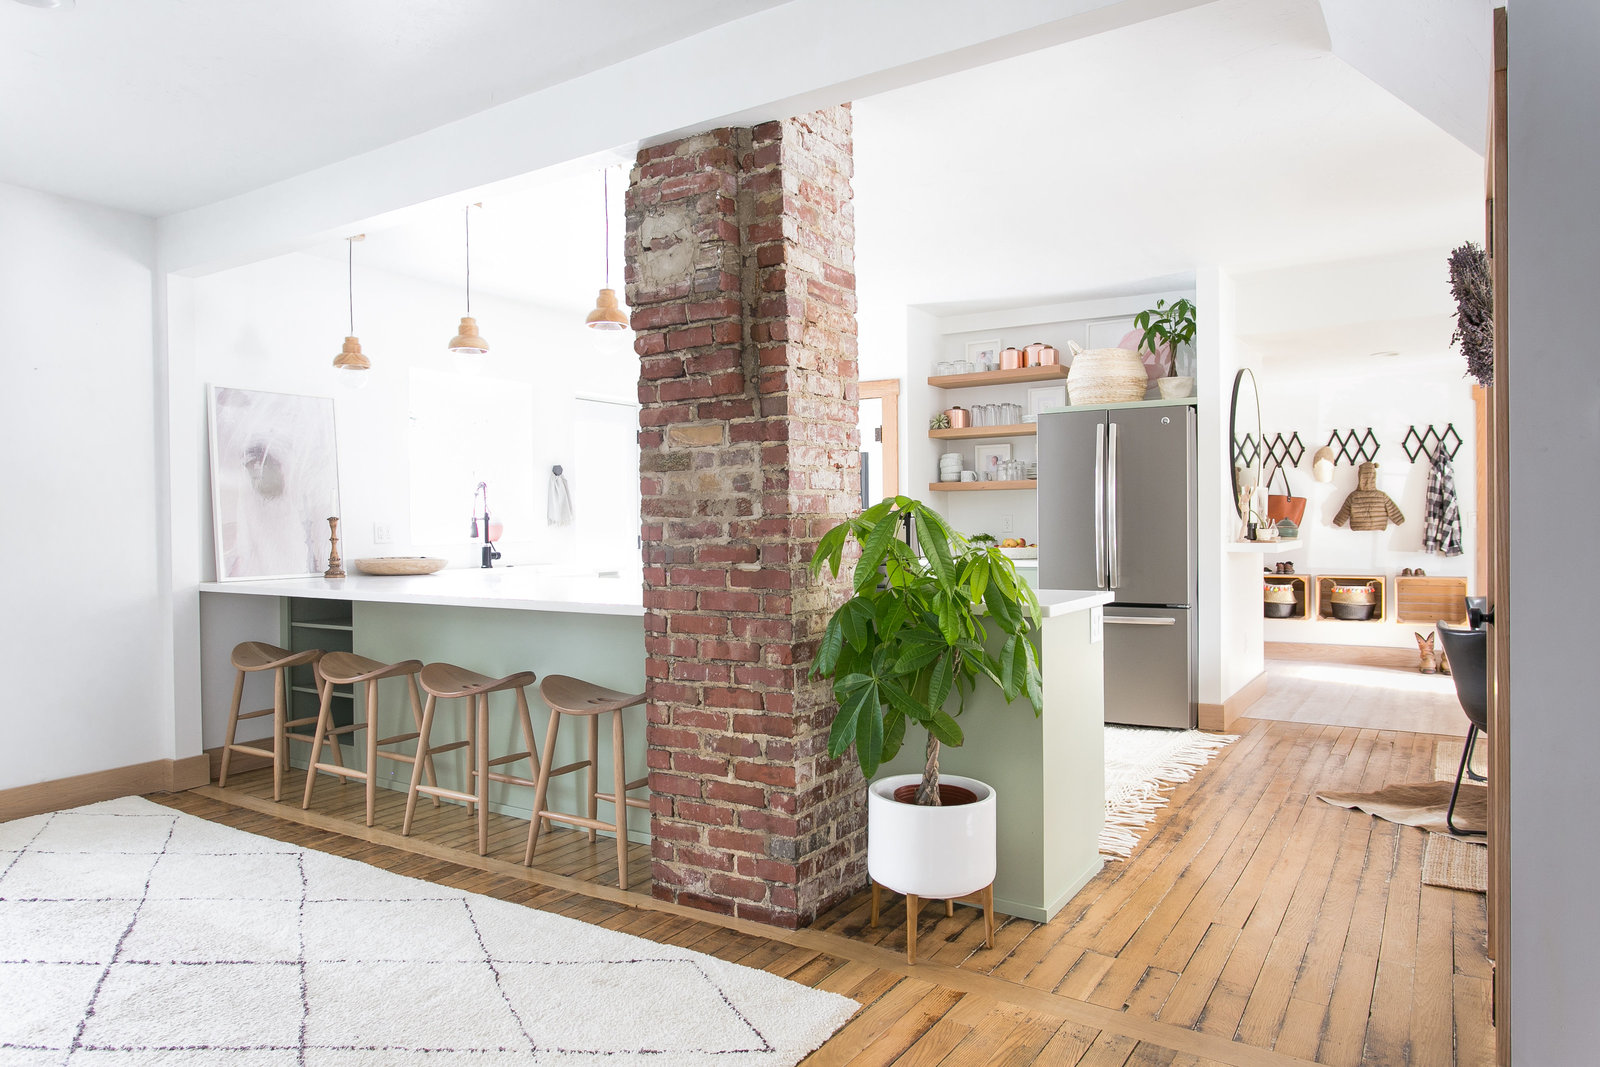 Modern farmhouse design with open concept. Design includes exposed brick, refurbished flooring, floating shelves, sage cabinetry and simple wood pendants